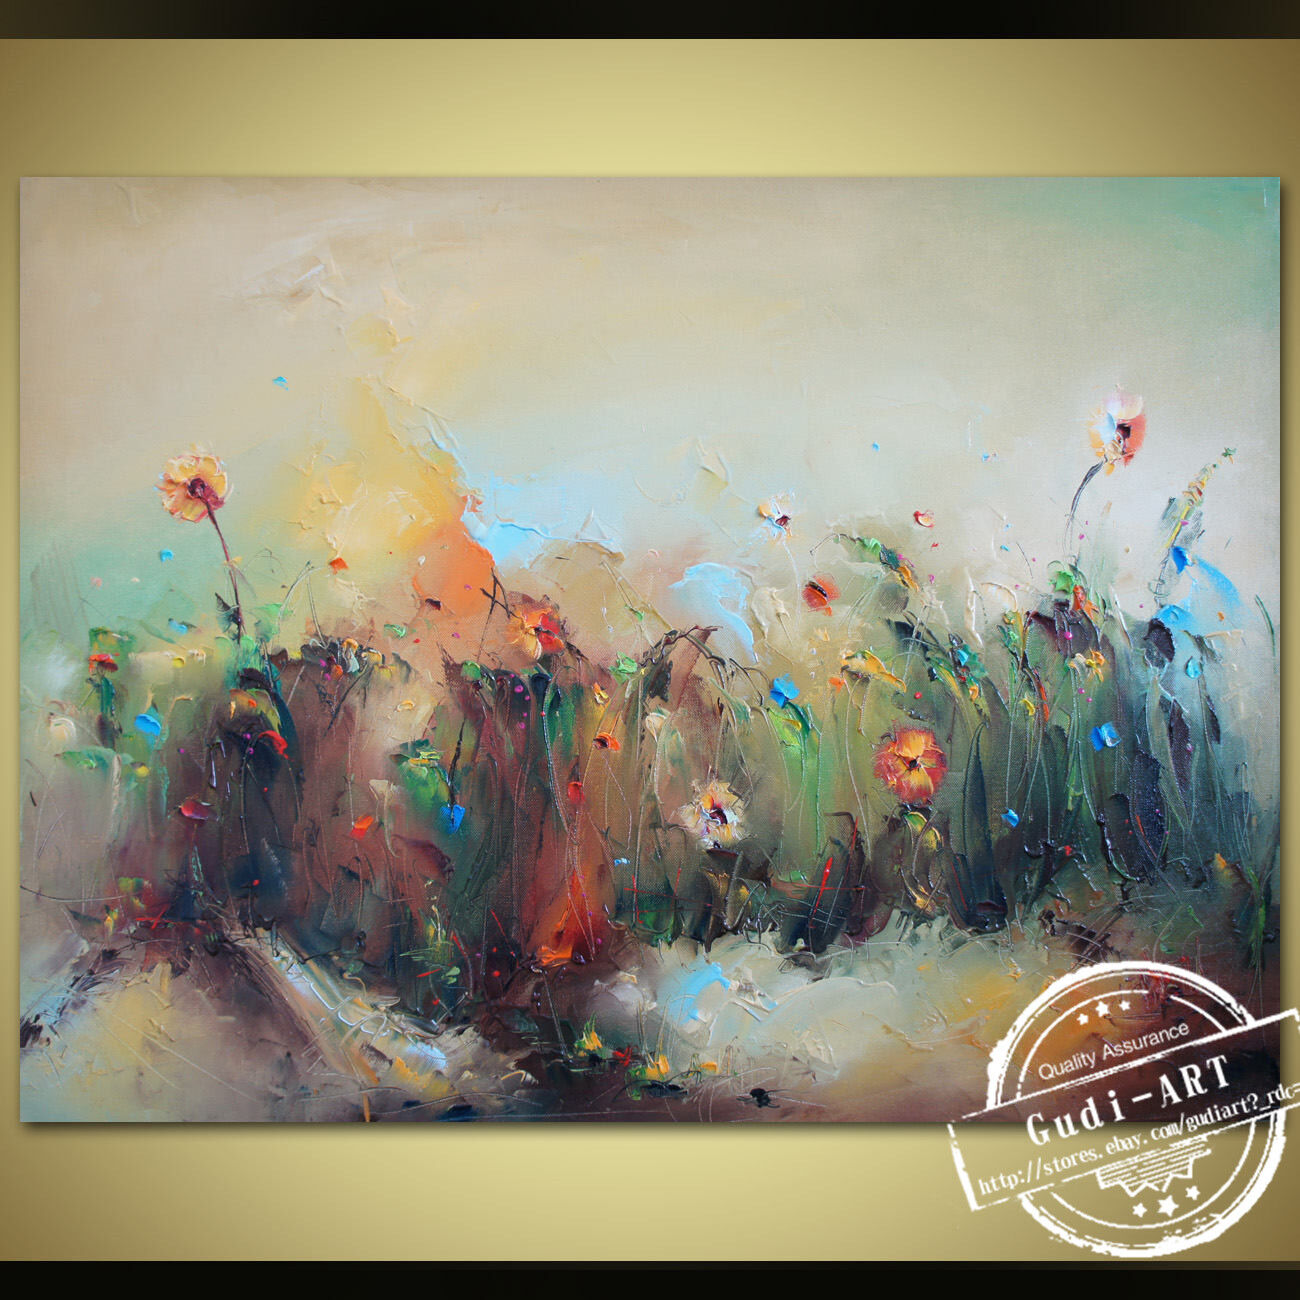 GUDI-Abstract Hand-Painted Flower Oil Painting Home Modern Decor ...